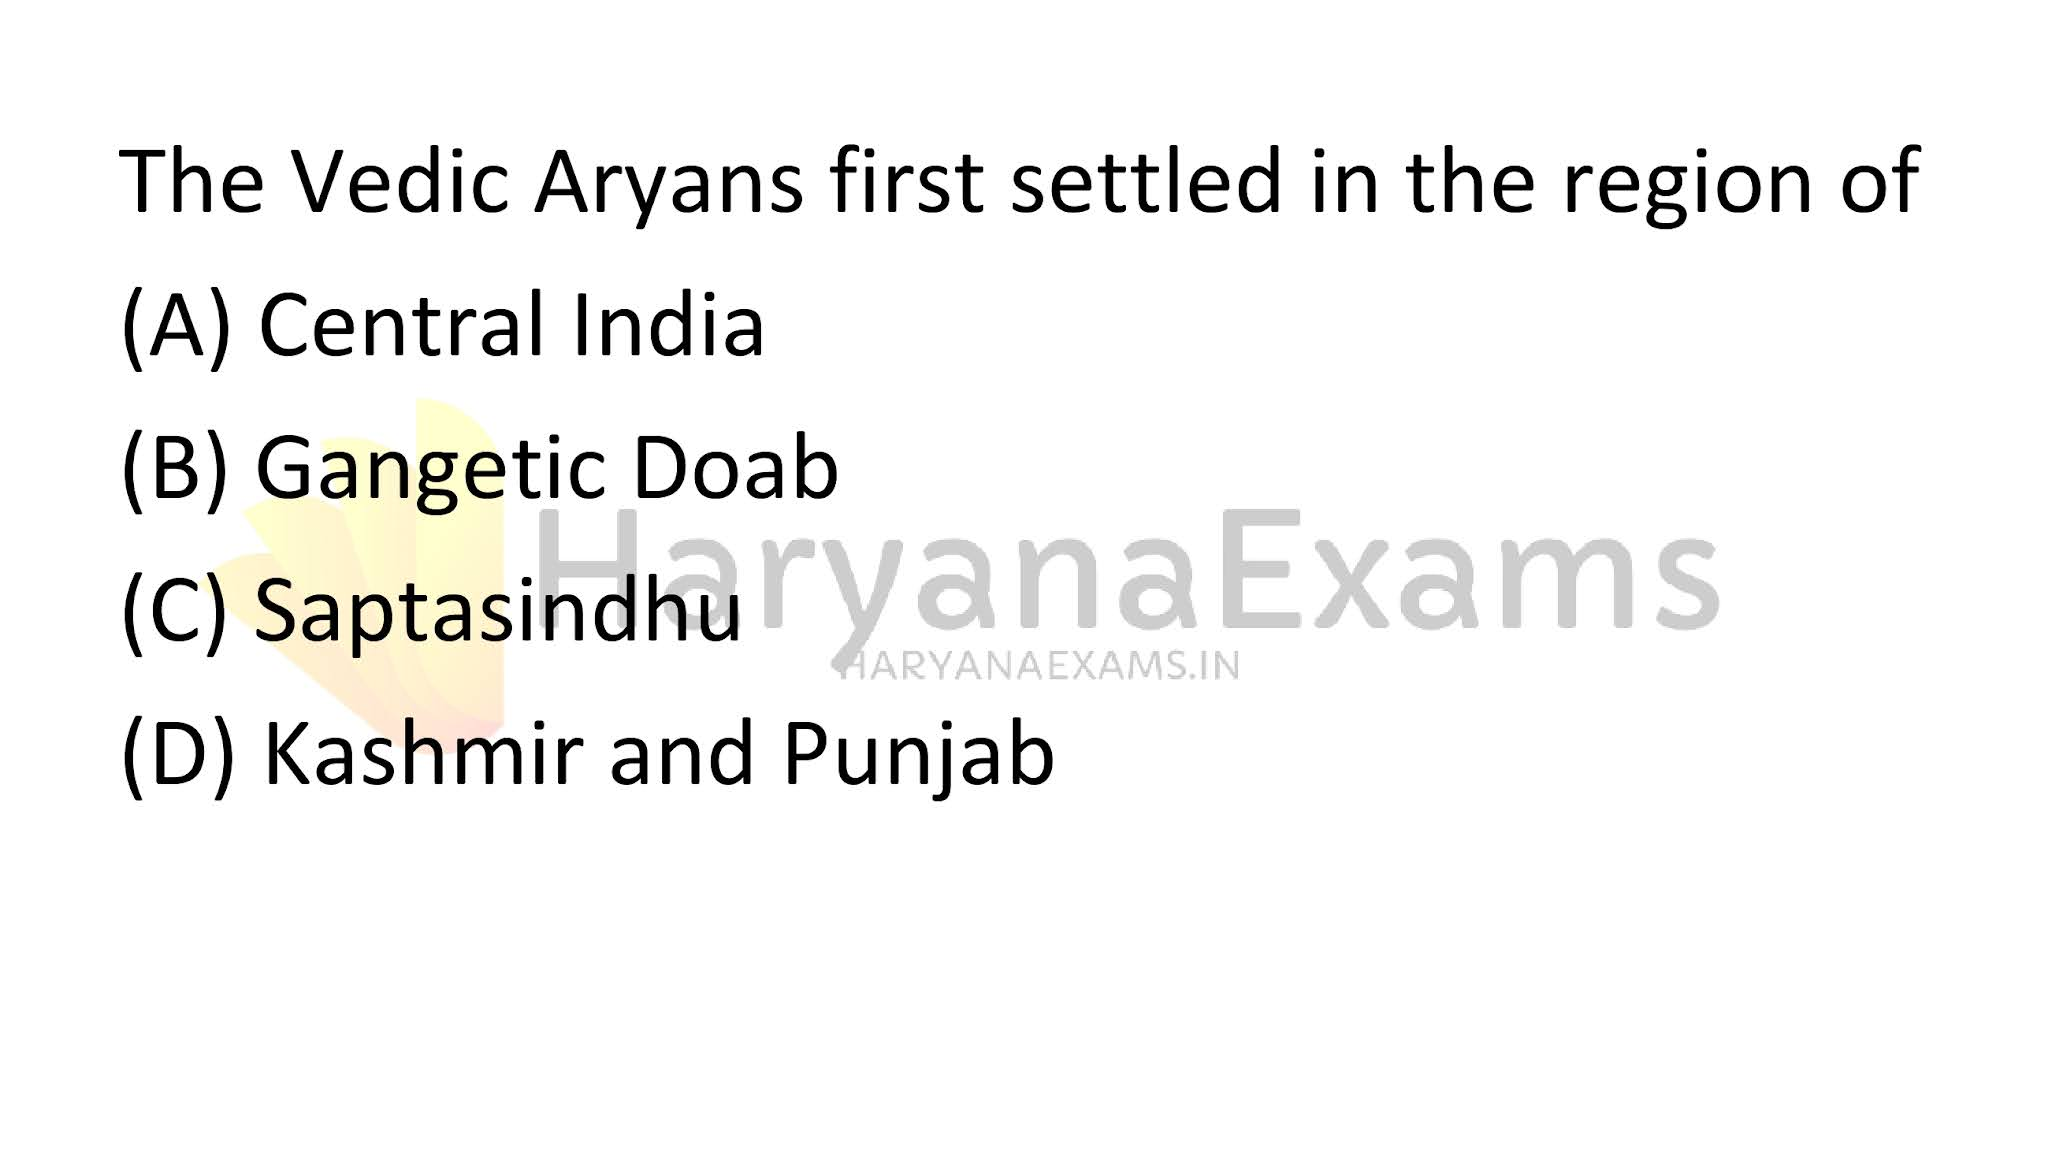 The Vedic Aryans first settled in the region of